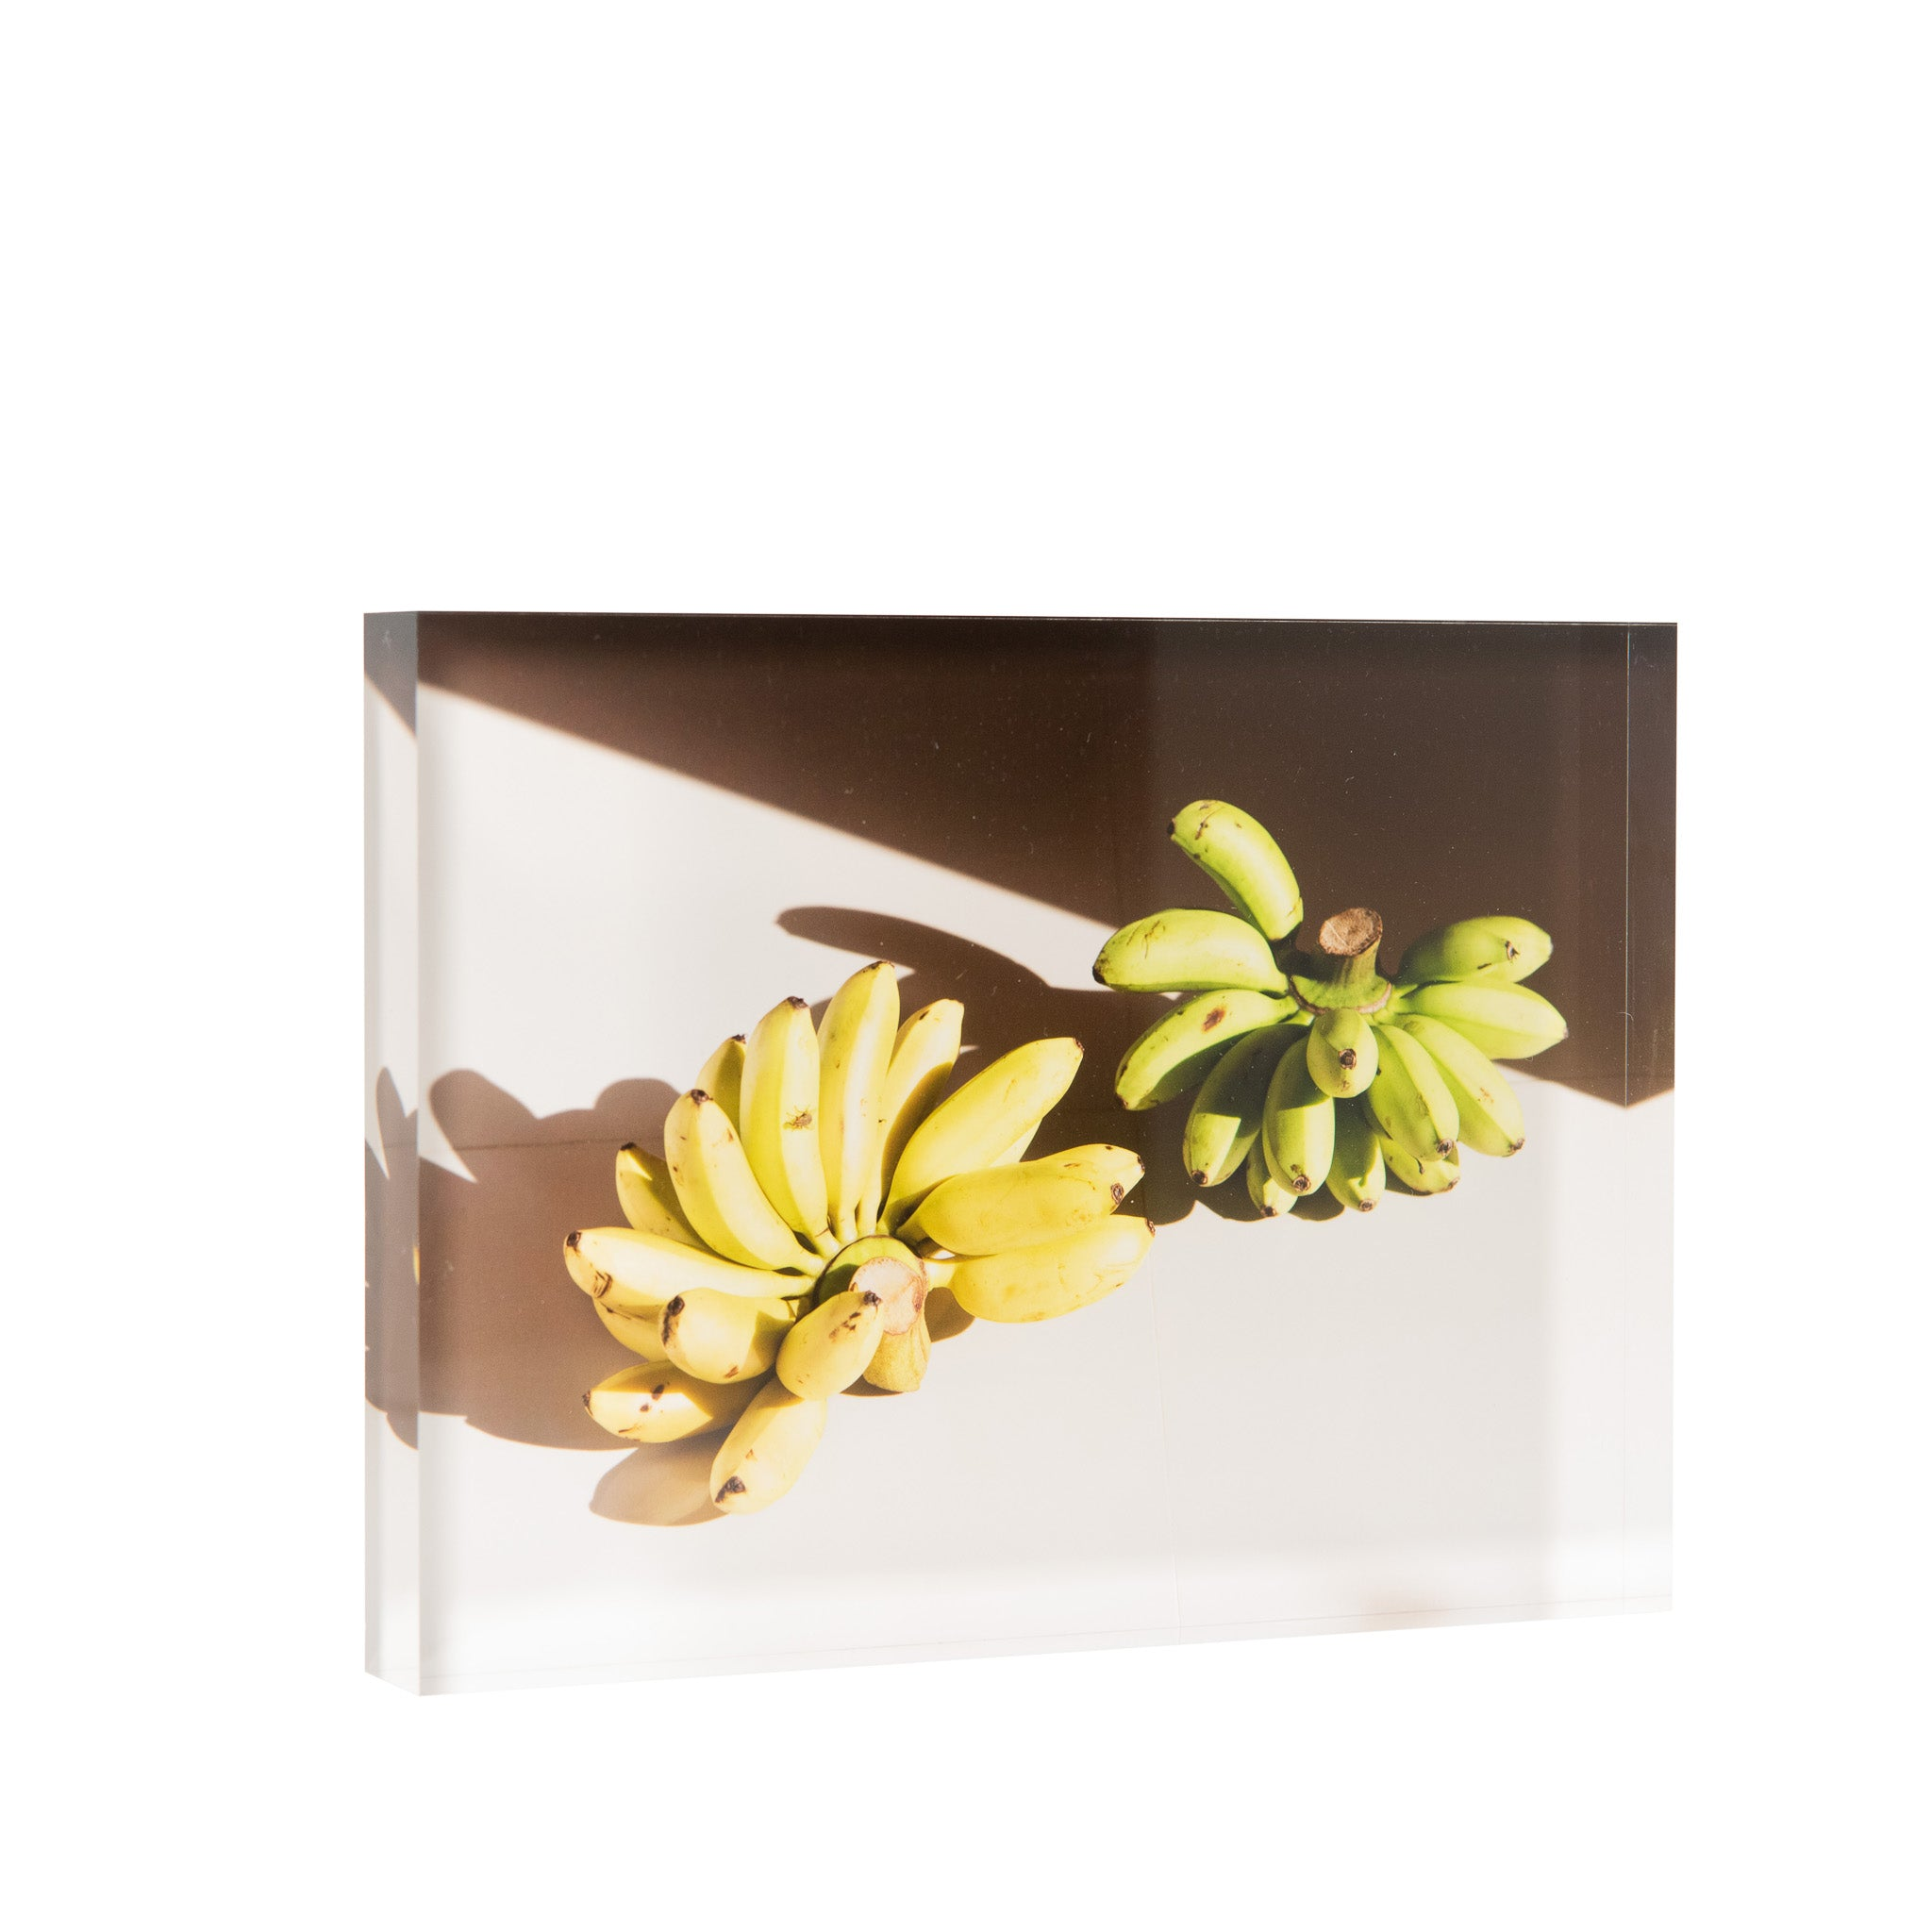 Lucite Block : Thai Fruit 1